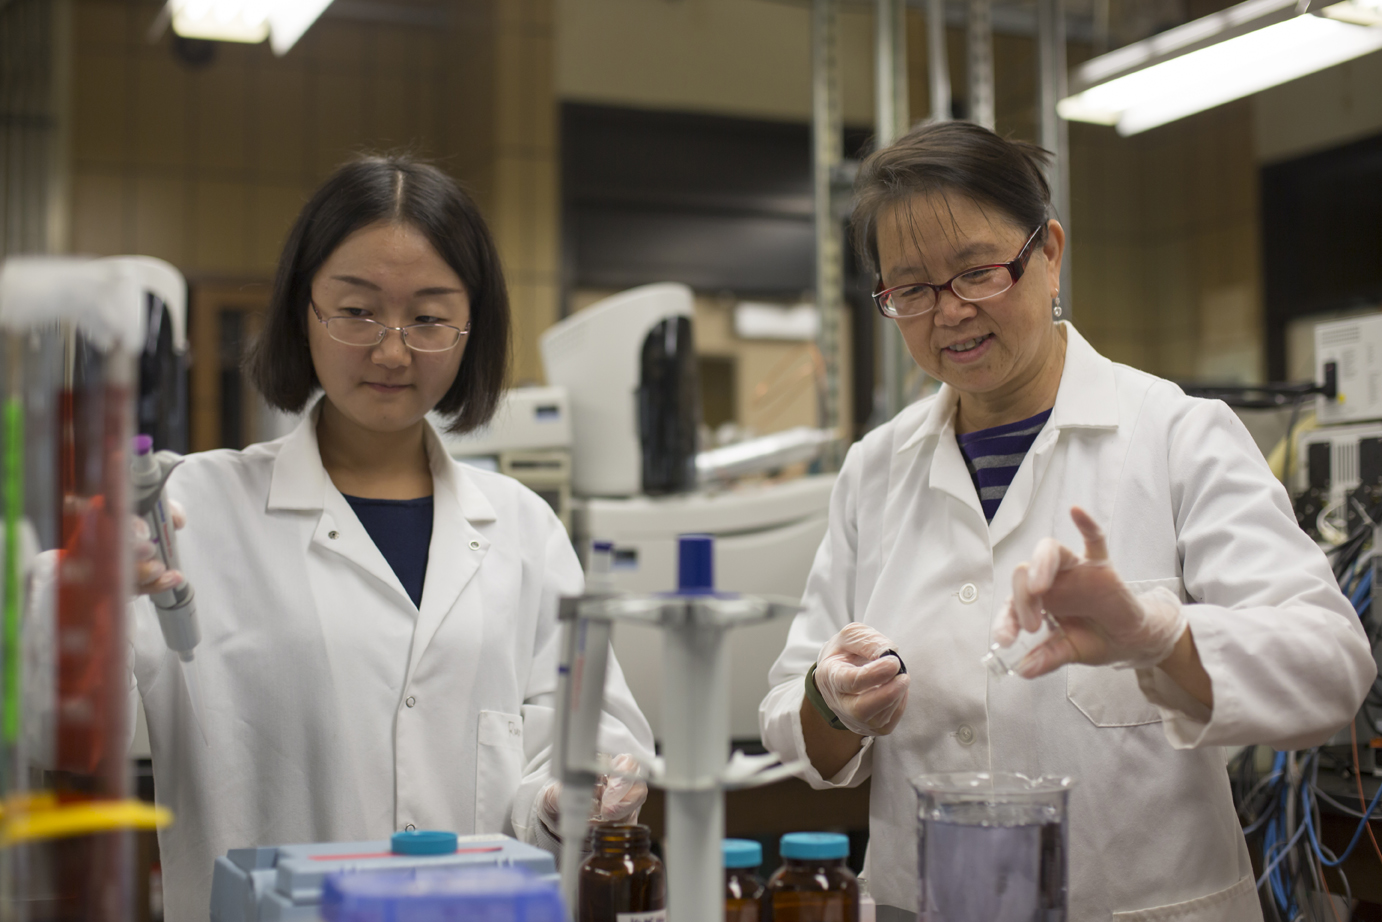 Dr. Honglan Shi and her students Runmiao Xue and Haiting Zhang conduct drinking water quality research in Schrenk Hall.